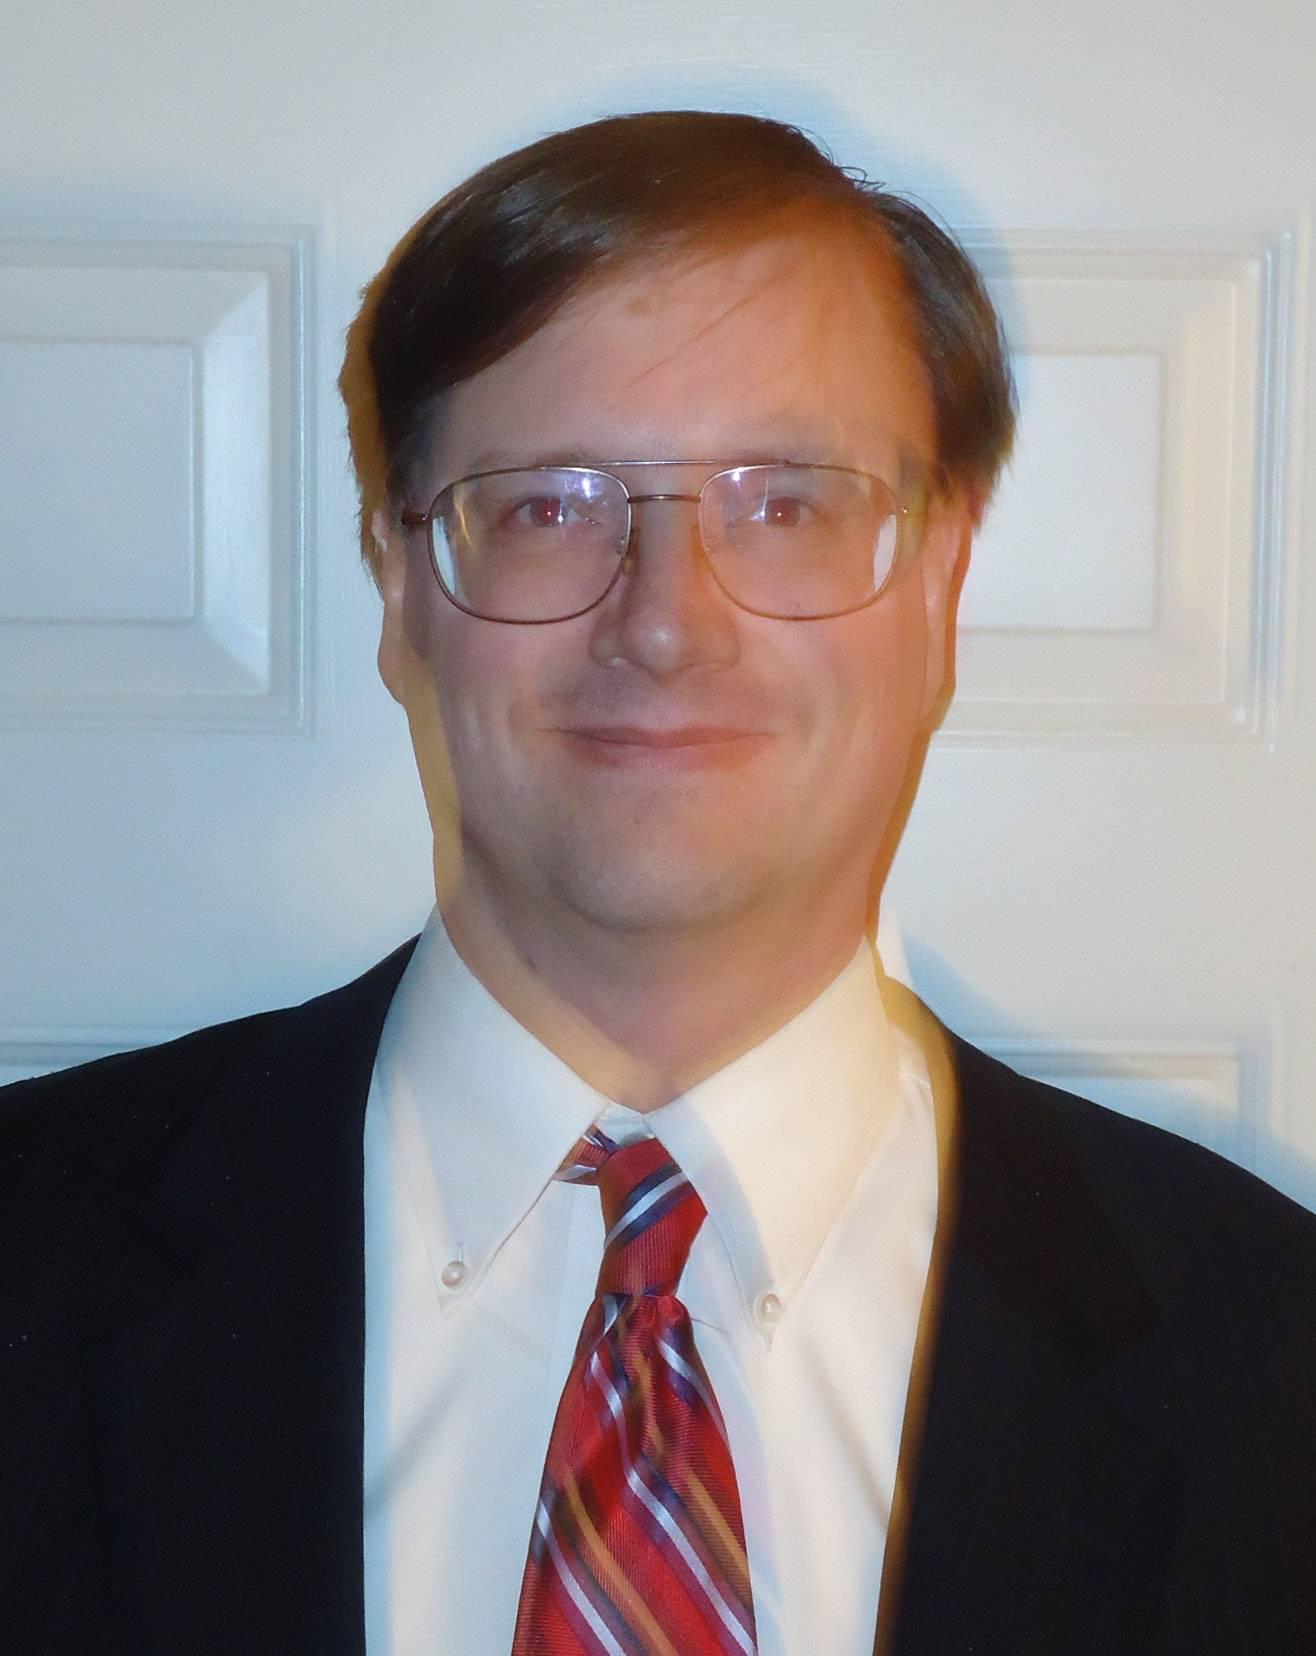 Bruce Gottermeyer, running for Emmons District 33 School Board (4-year Terms)